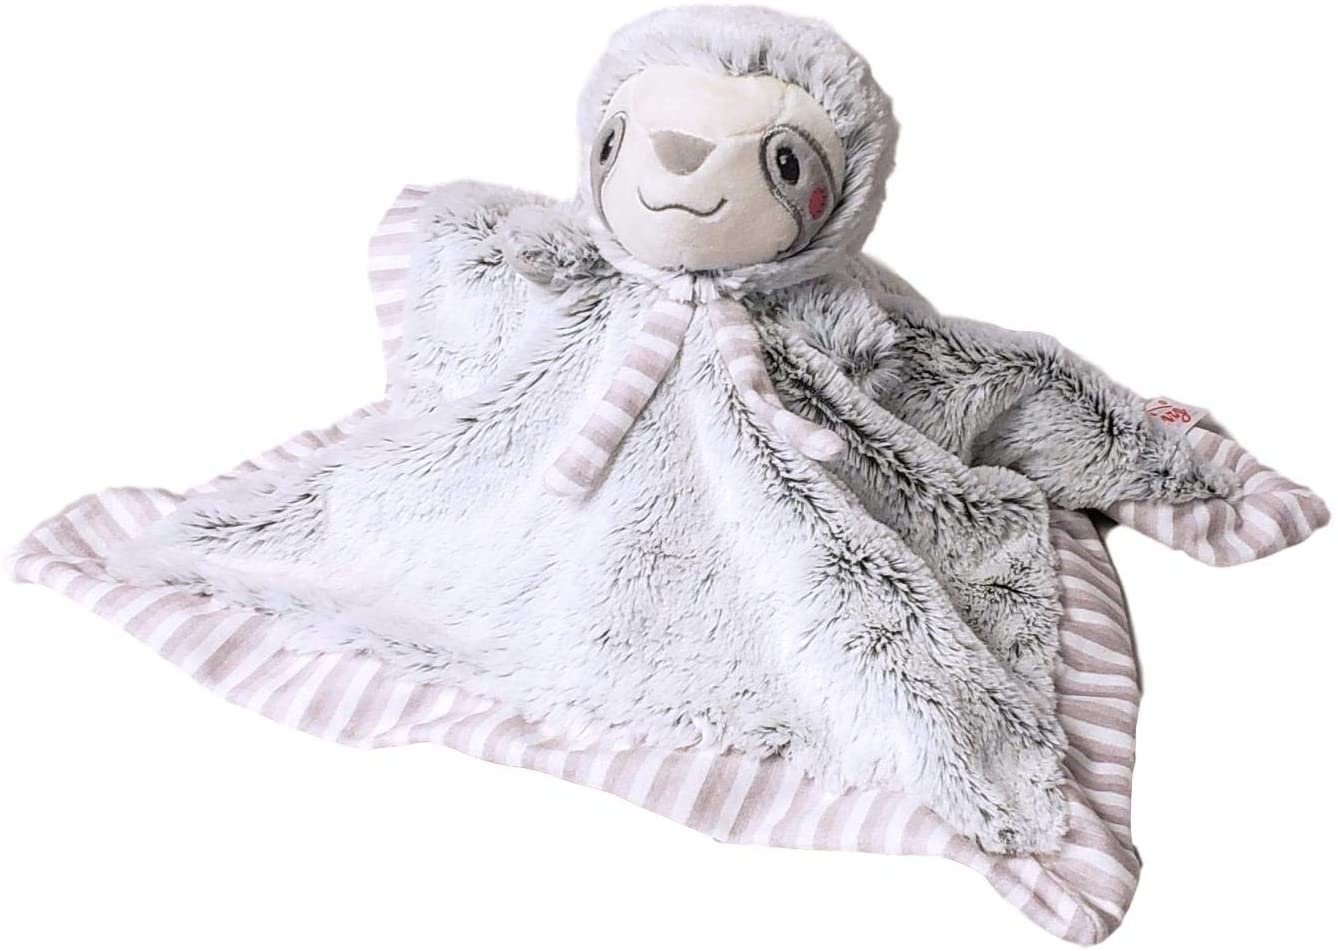 SONA G DESIGNS Sloth Lovie Lovey Security Blanket with Rattle Head - Can Be Personalized (Sloth)